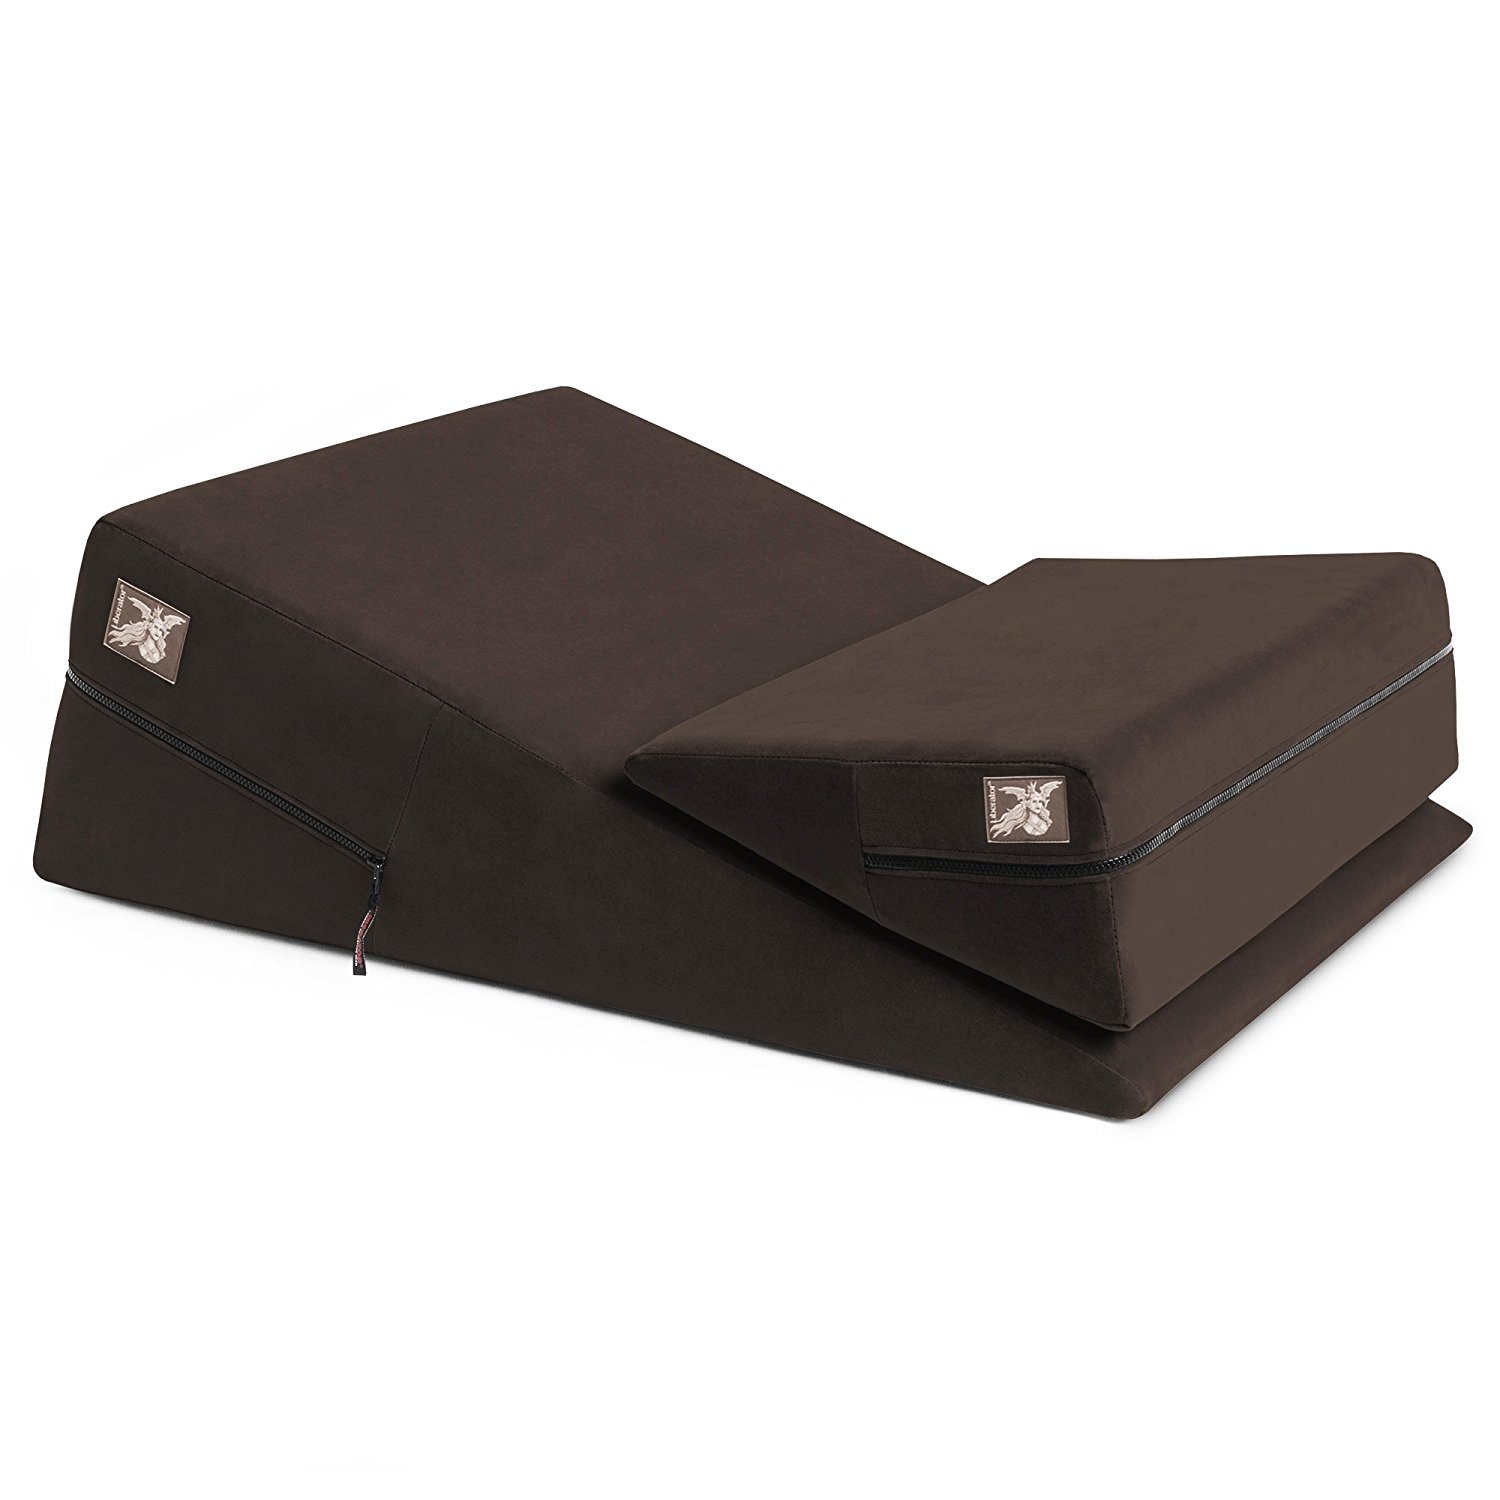 Liberator Wedge and Ramp Combo Chocolate Microfiber